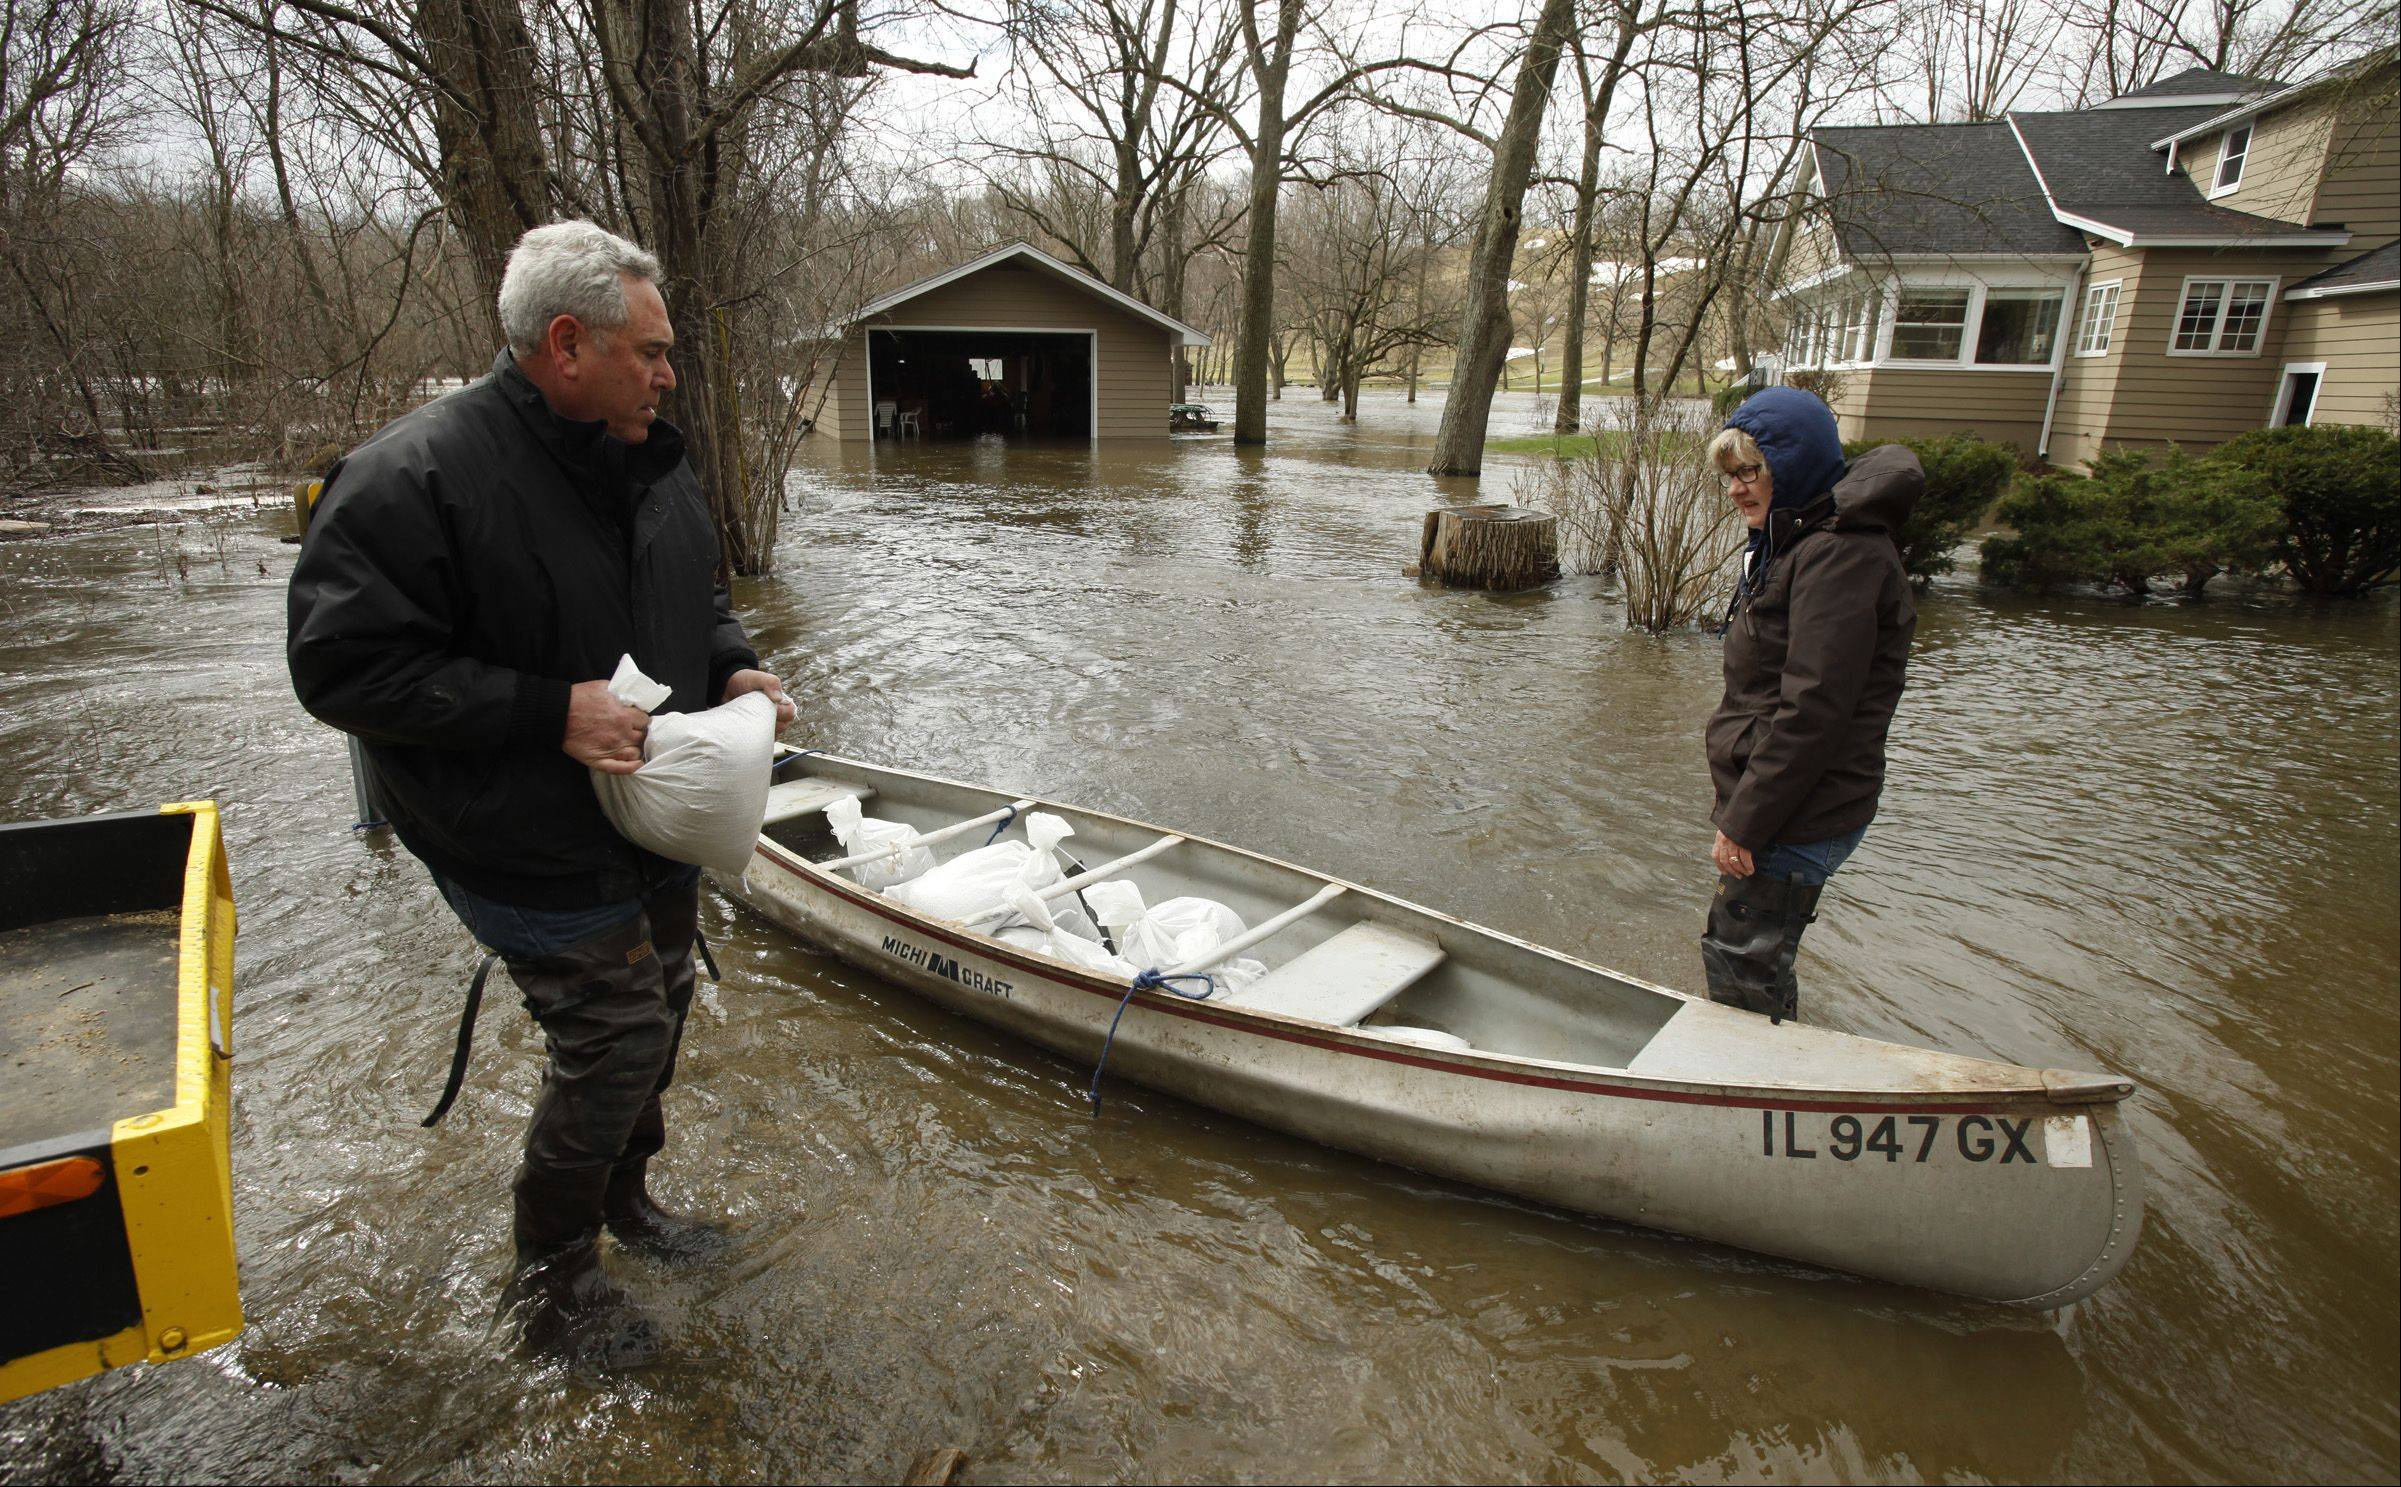 Nick and Nan Gagliano of Algonquin load sandbags into a canoe to make it easier to get them to their home Friday along the Fox River.